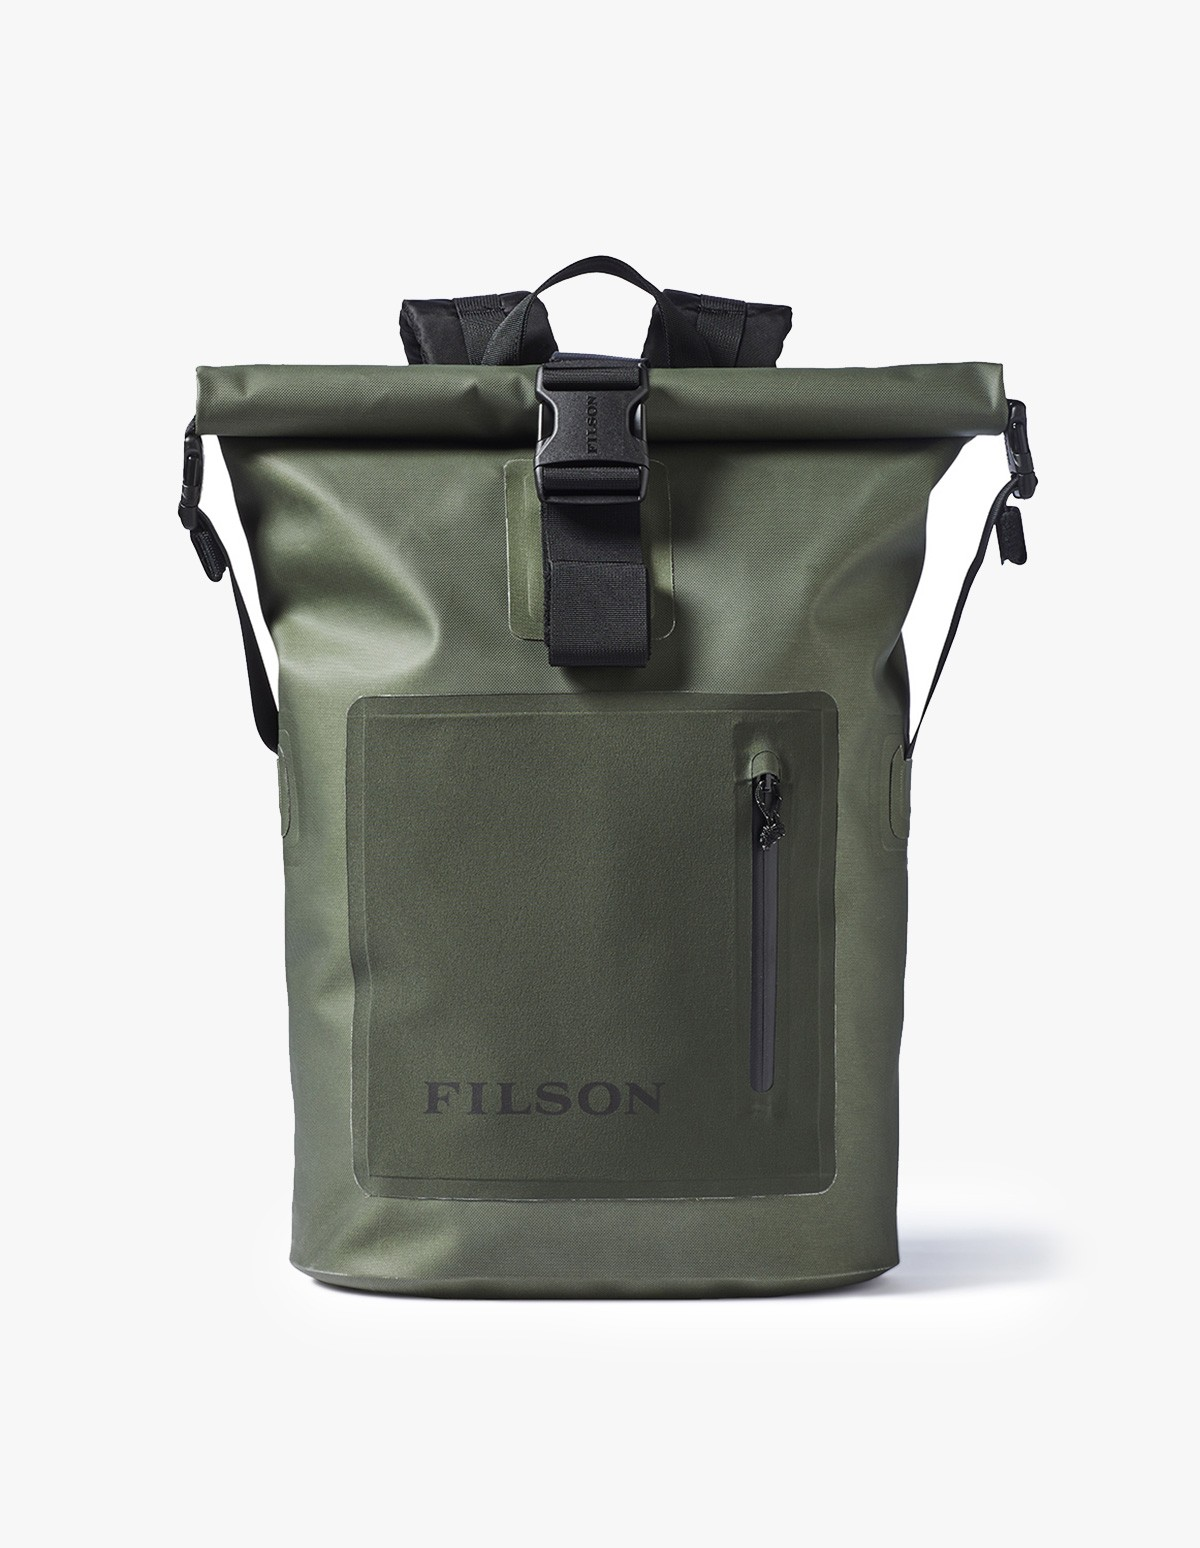 Filson Dry Backpack in Otter Green